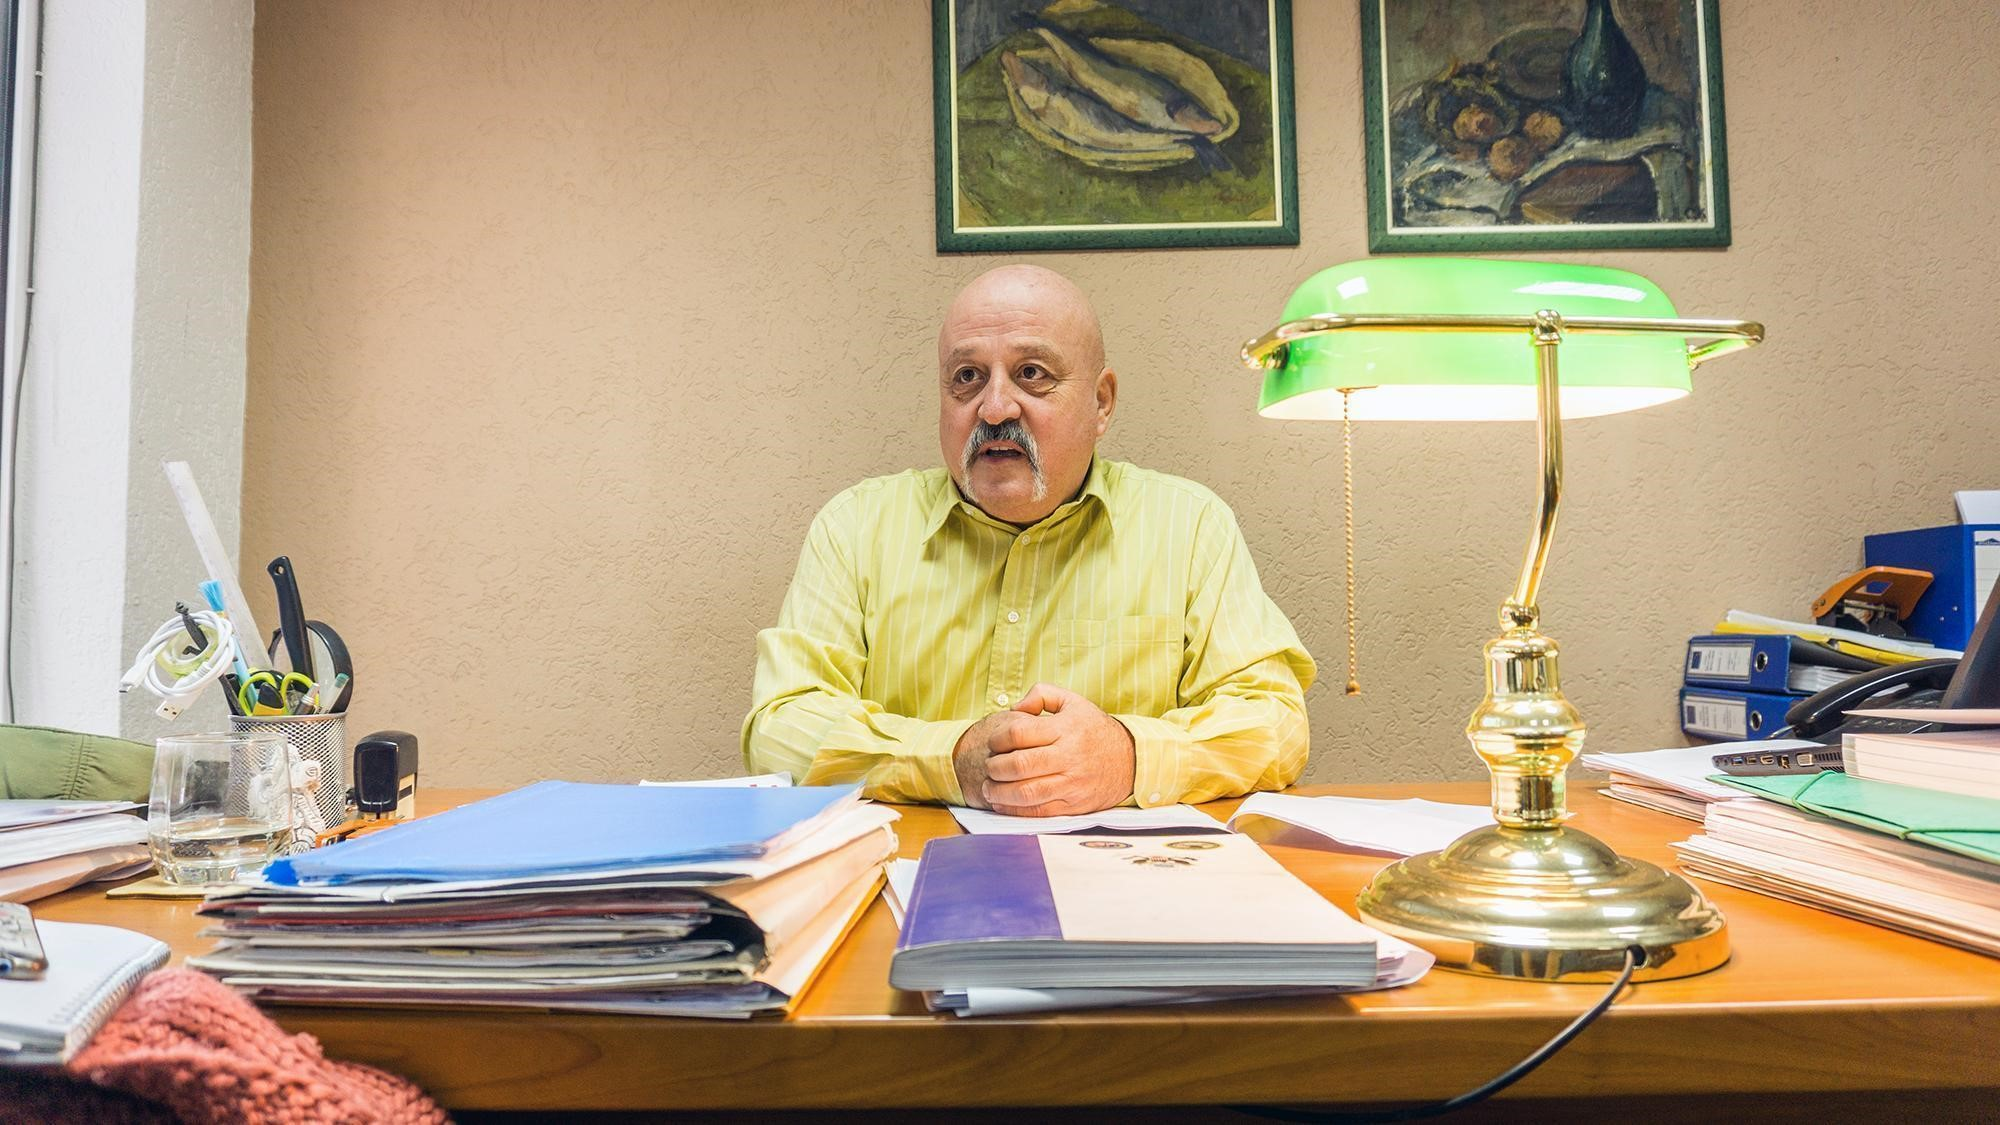 Nebojsa Vlajic, friend and lawyer of the late Oliver Ivanovic, discusses violence in northern Kosovo at his office in Mitrovica. Photo: Stefan Milivojevic